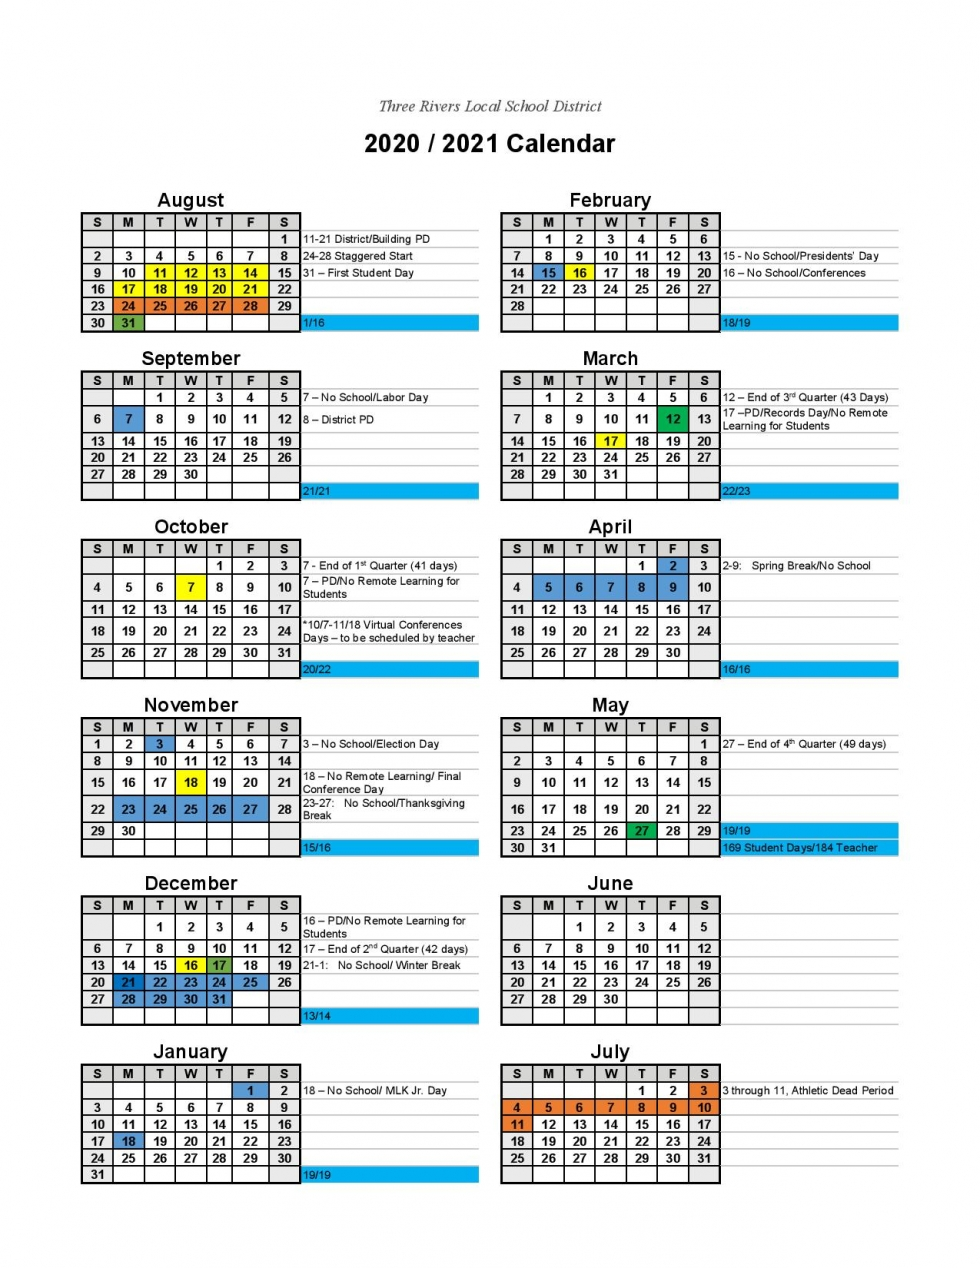 Three Rivers Local School District   calendars